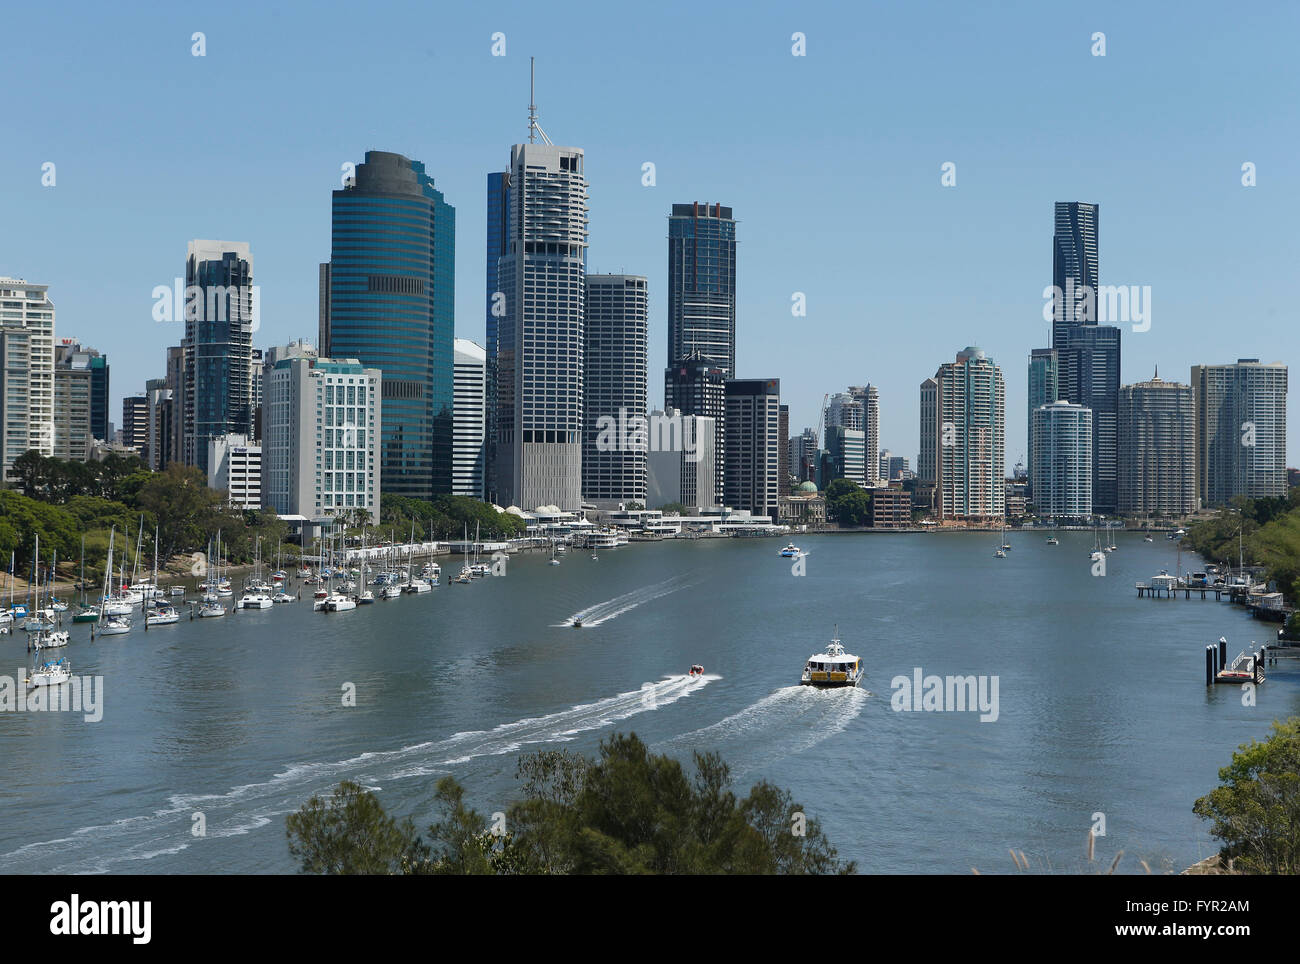 Skyline, harbour, Brisbane River, Brisbane, Queensland, Australia - Stock Image